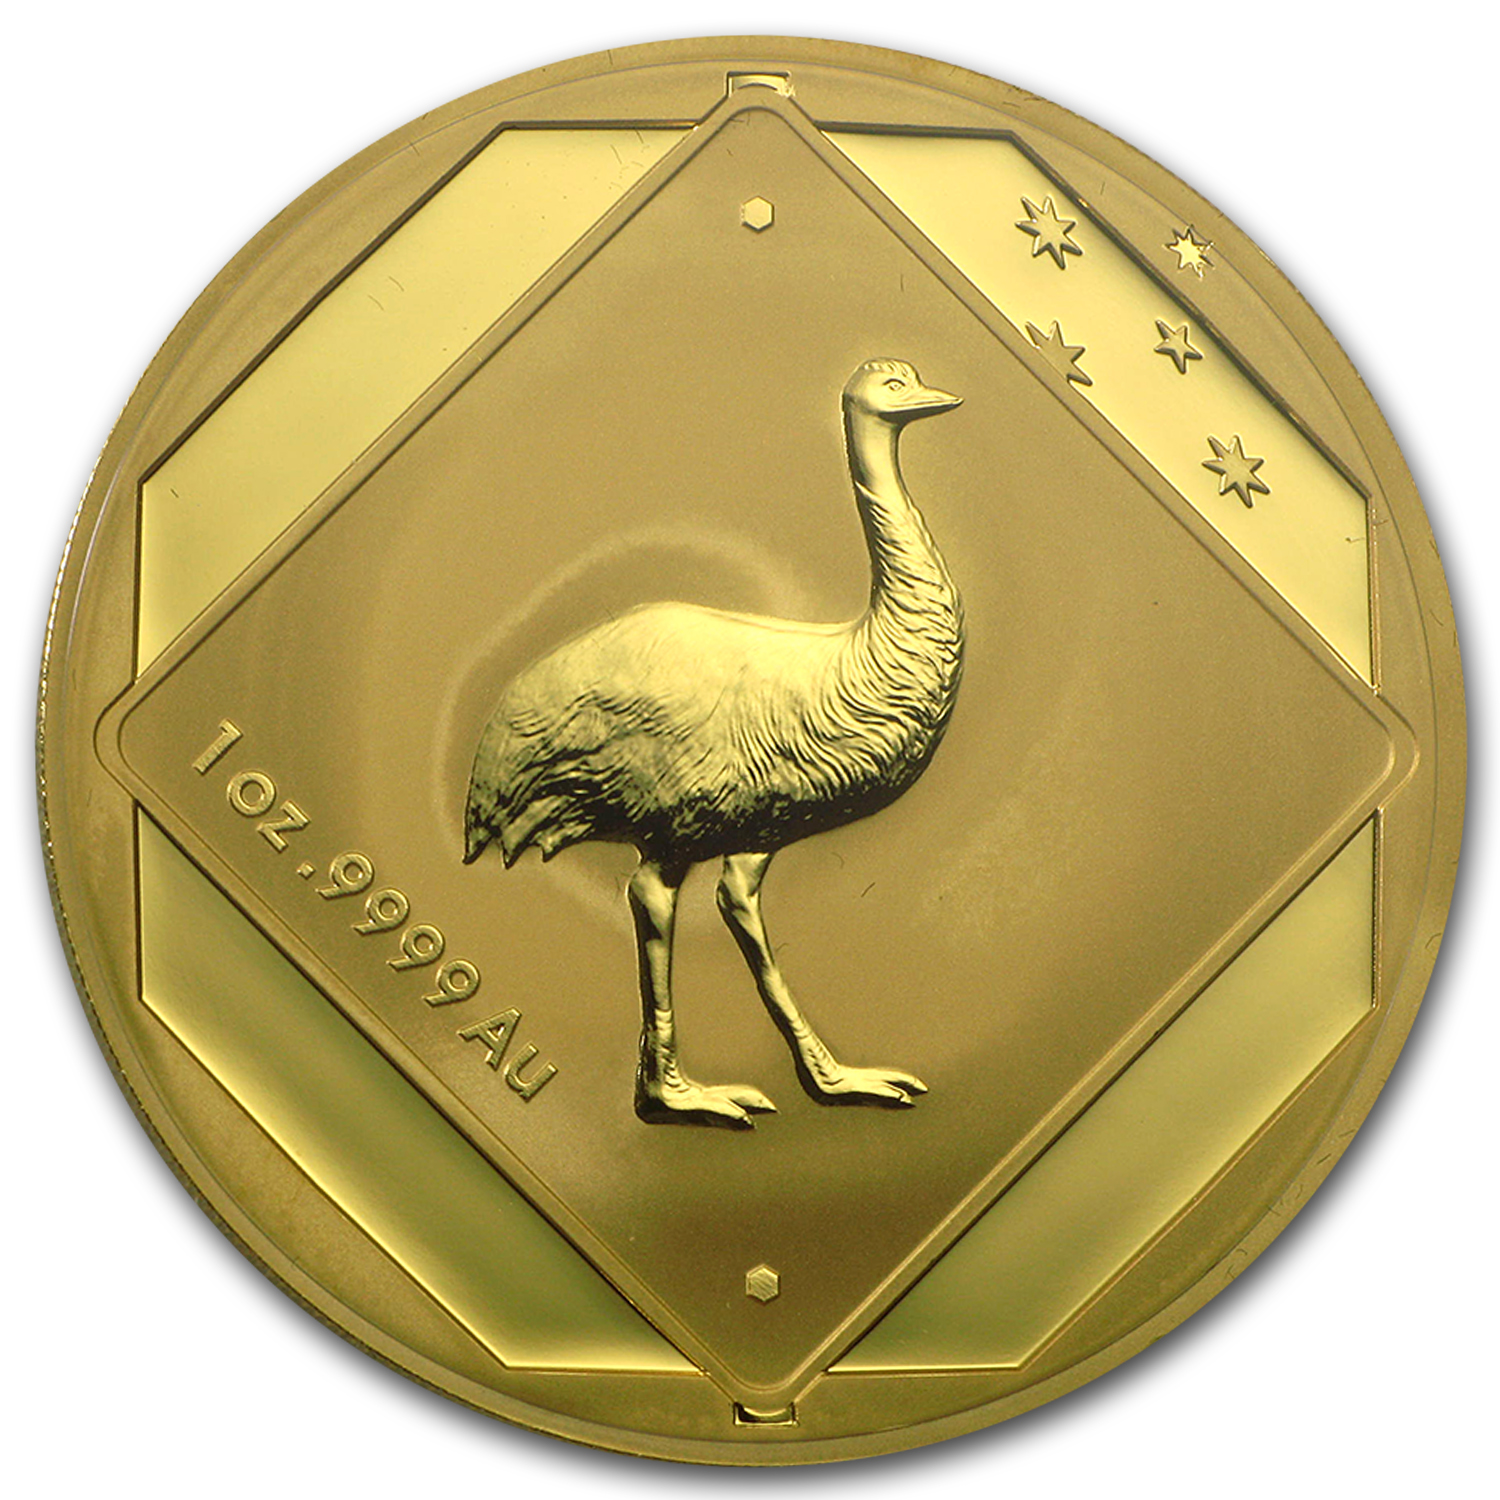 2015 Australia 1 oz Gold $100 Emu Road Sign BU